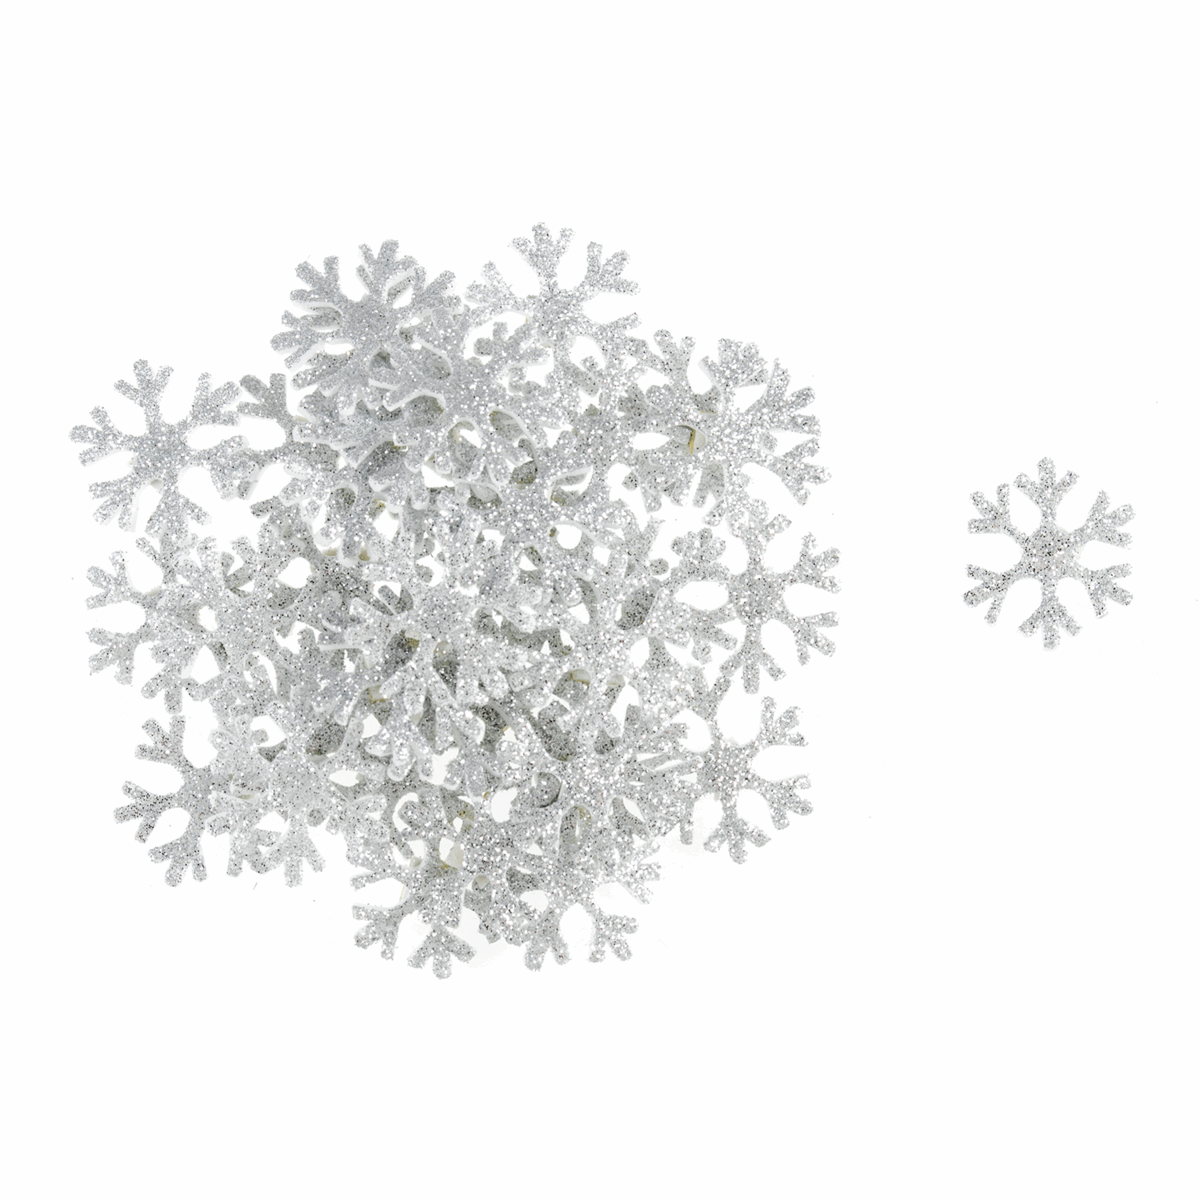 Picture of Craft Embellishments: Glitter Snowflakes: Silver: 35 Pieces